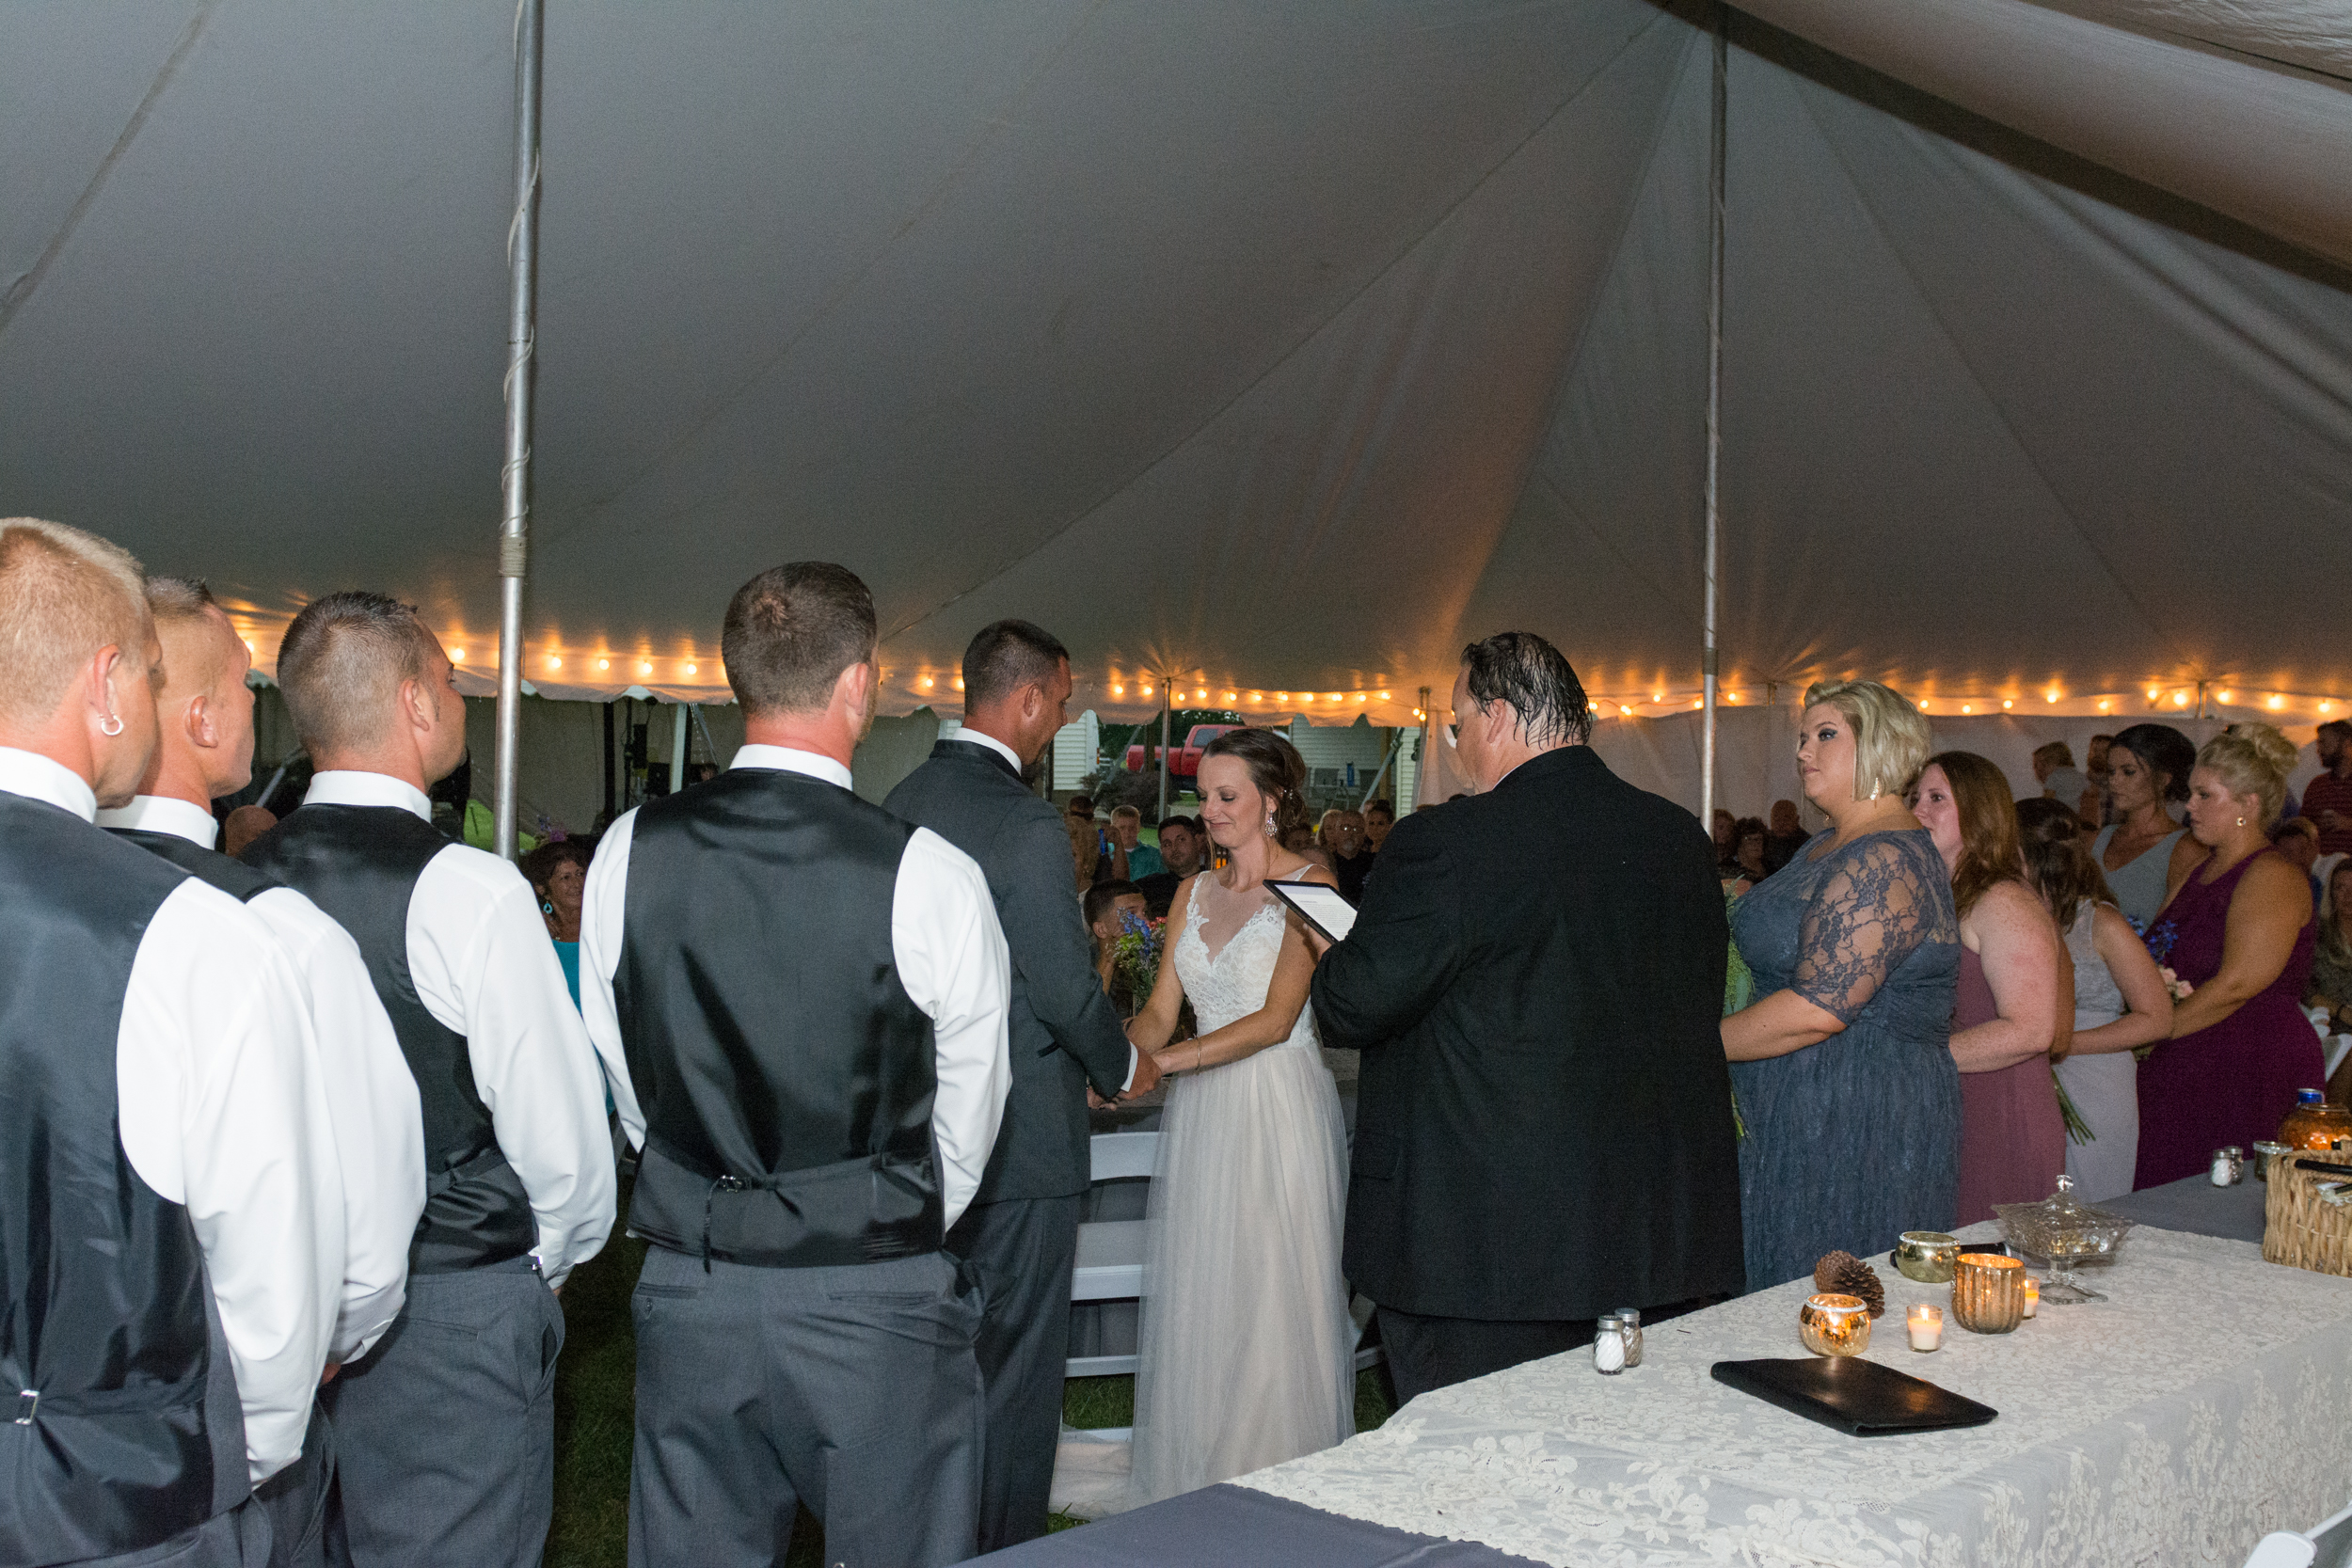 Life_by_pictures_photography dick wedding mount sterling ohio september_10.jpg